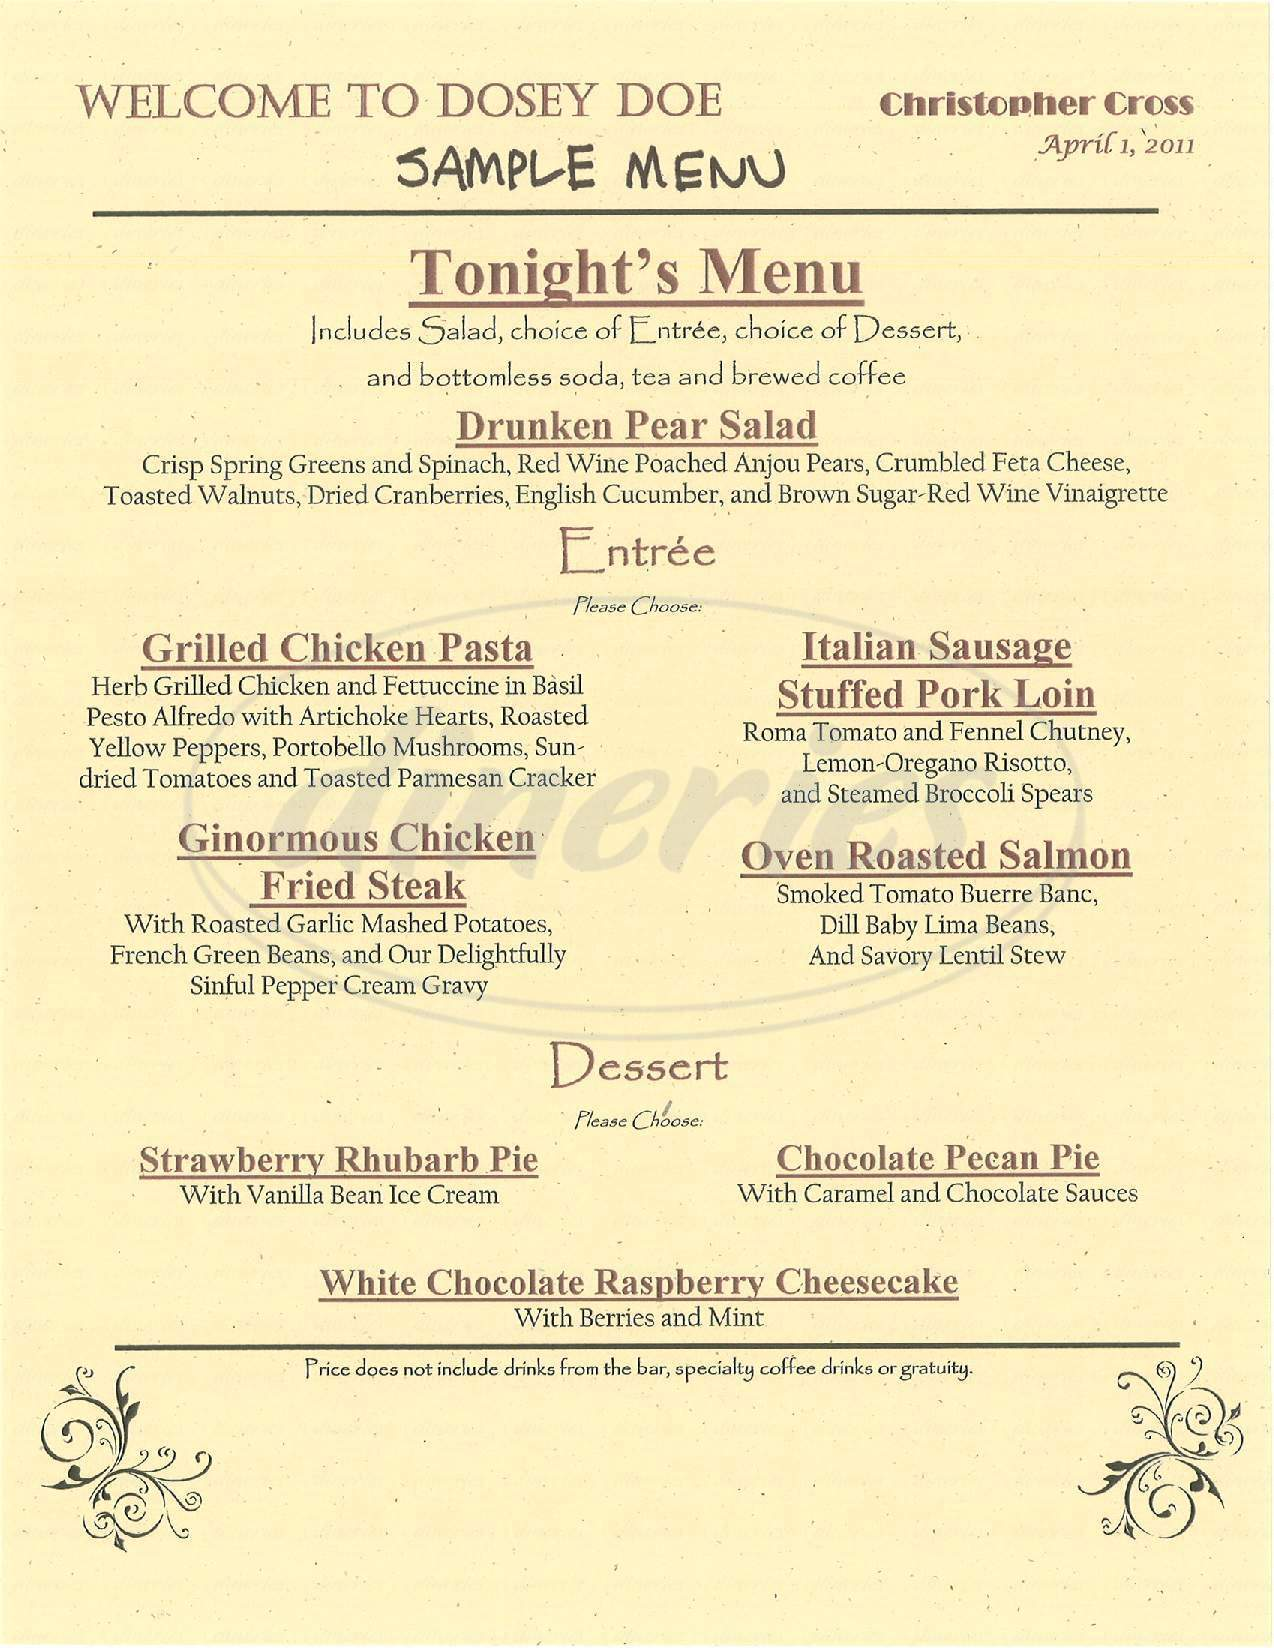 menu for Dosey Doe